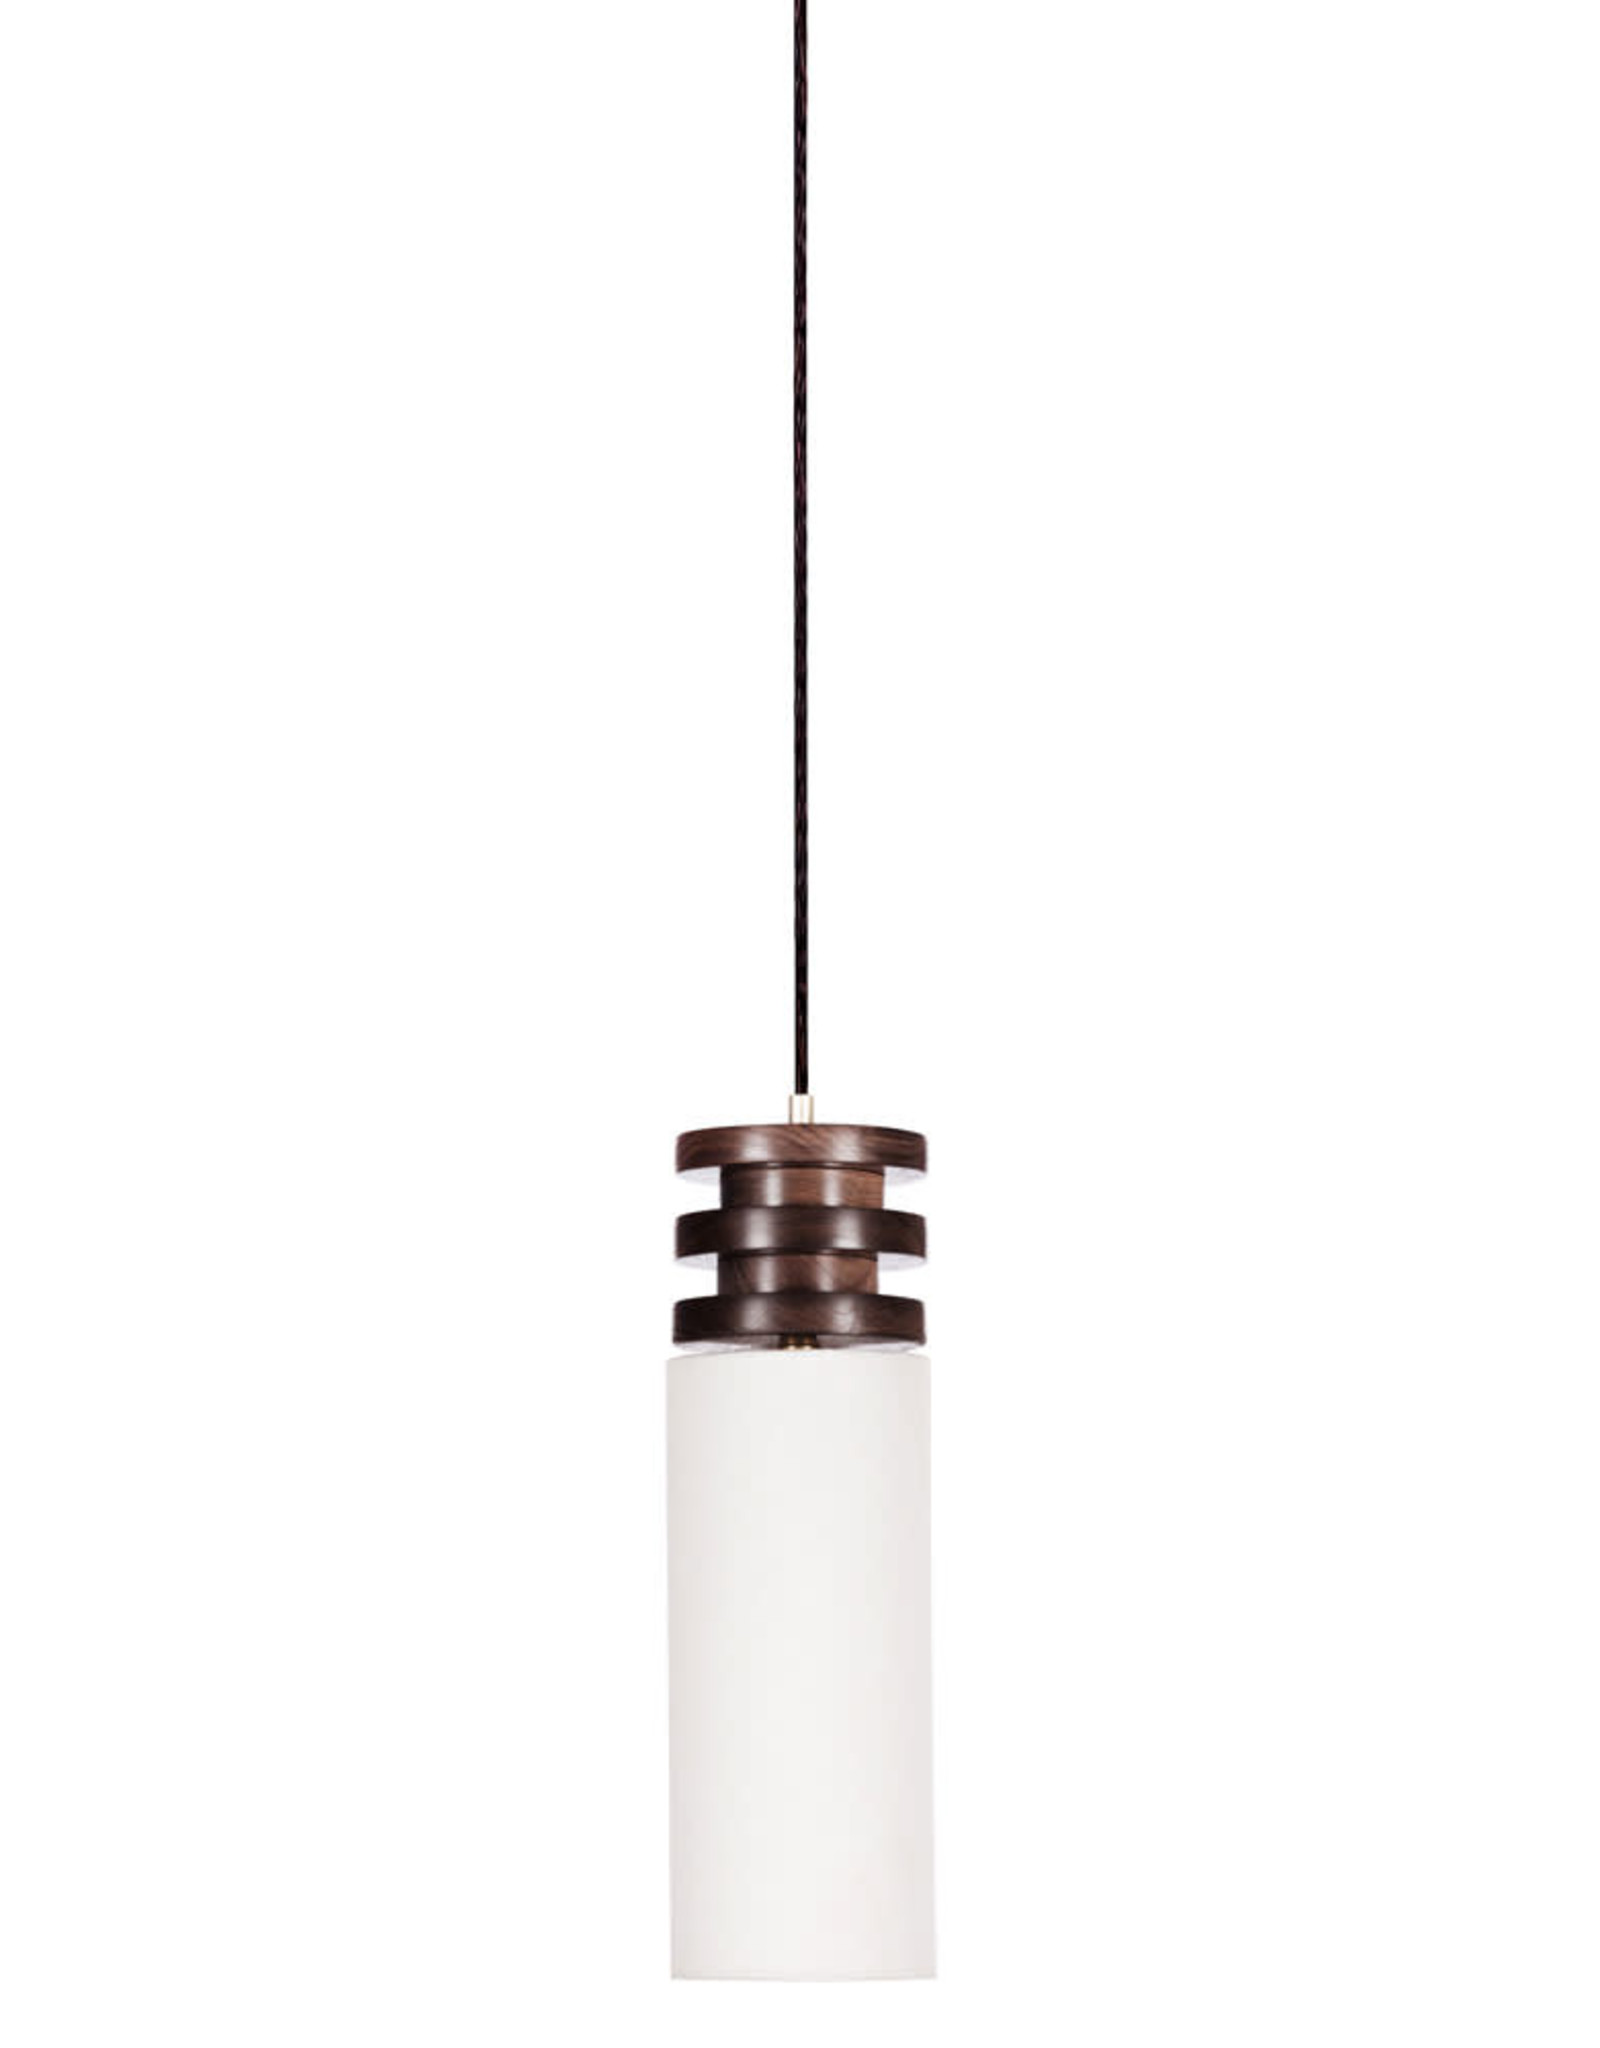 Lawrence & Scott by weve Malmo Pendant